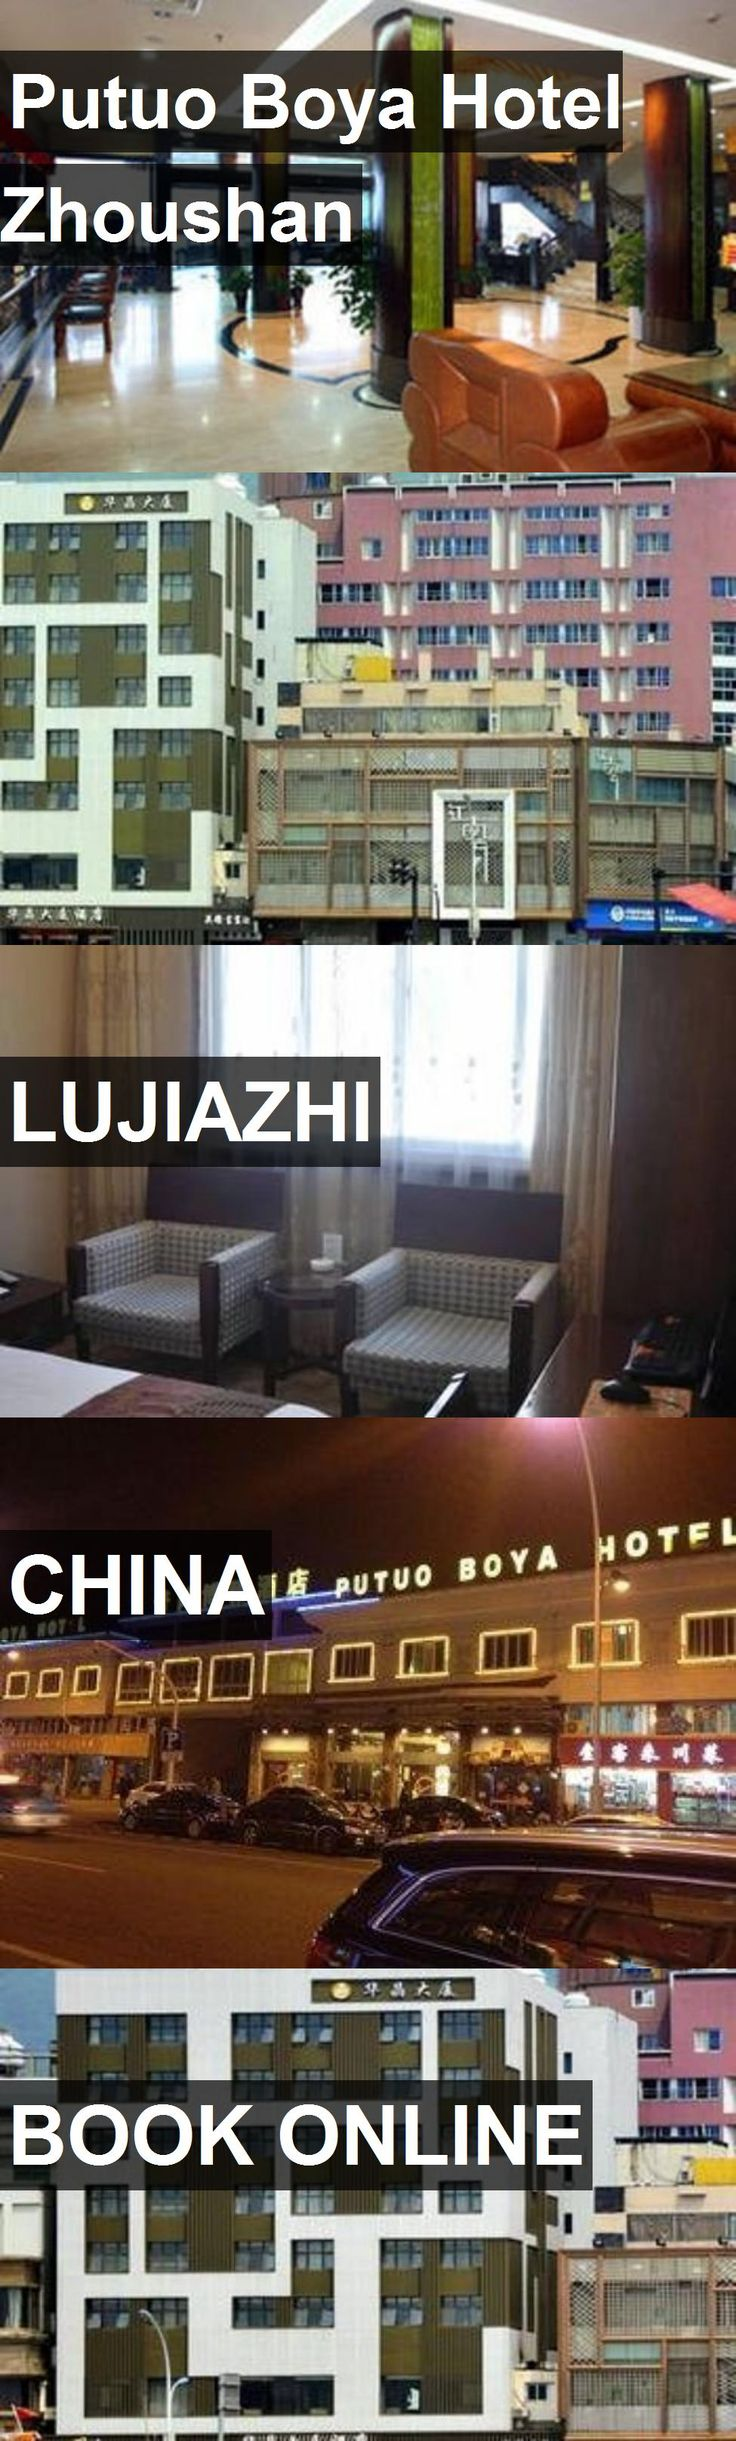 Putuo Boya Hotel Zhoushan in Lujiazhi, China. For more information, photos, reviews and best prices please follow the link. #China #Lujiazhi #travel #vacation #hotel